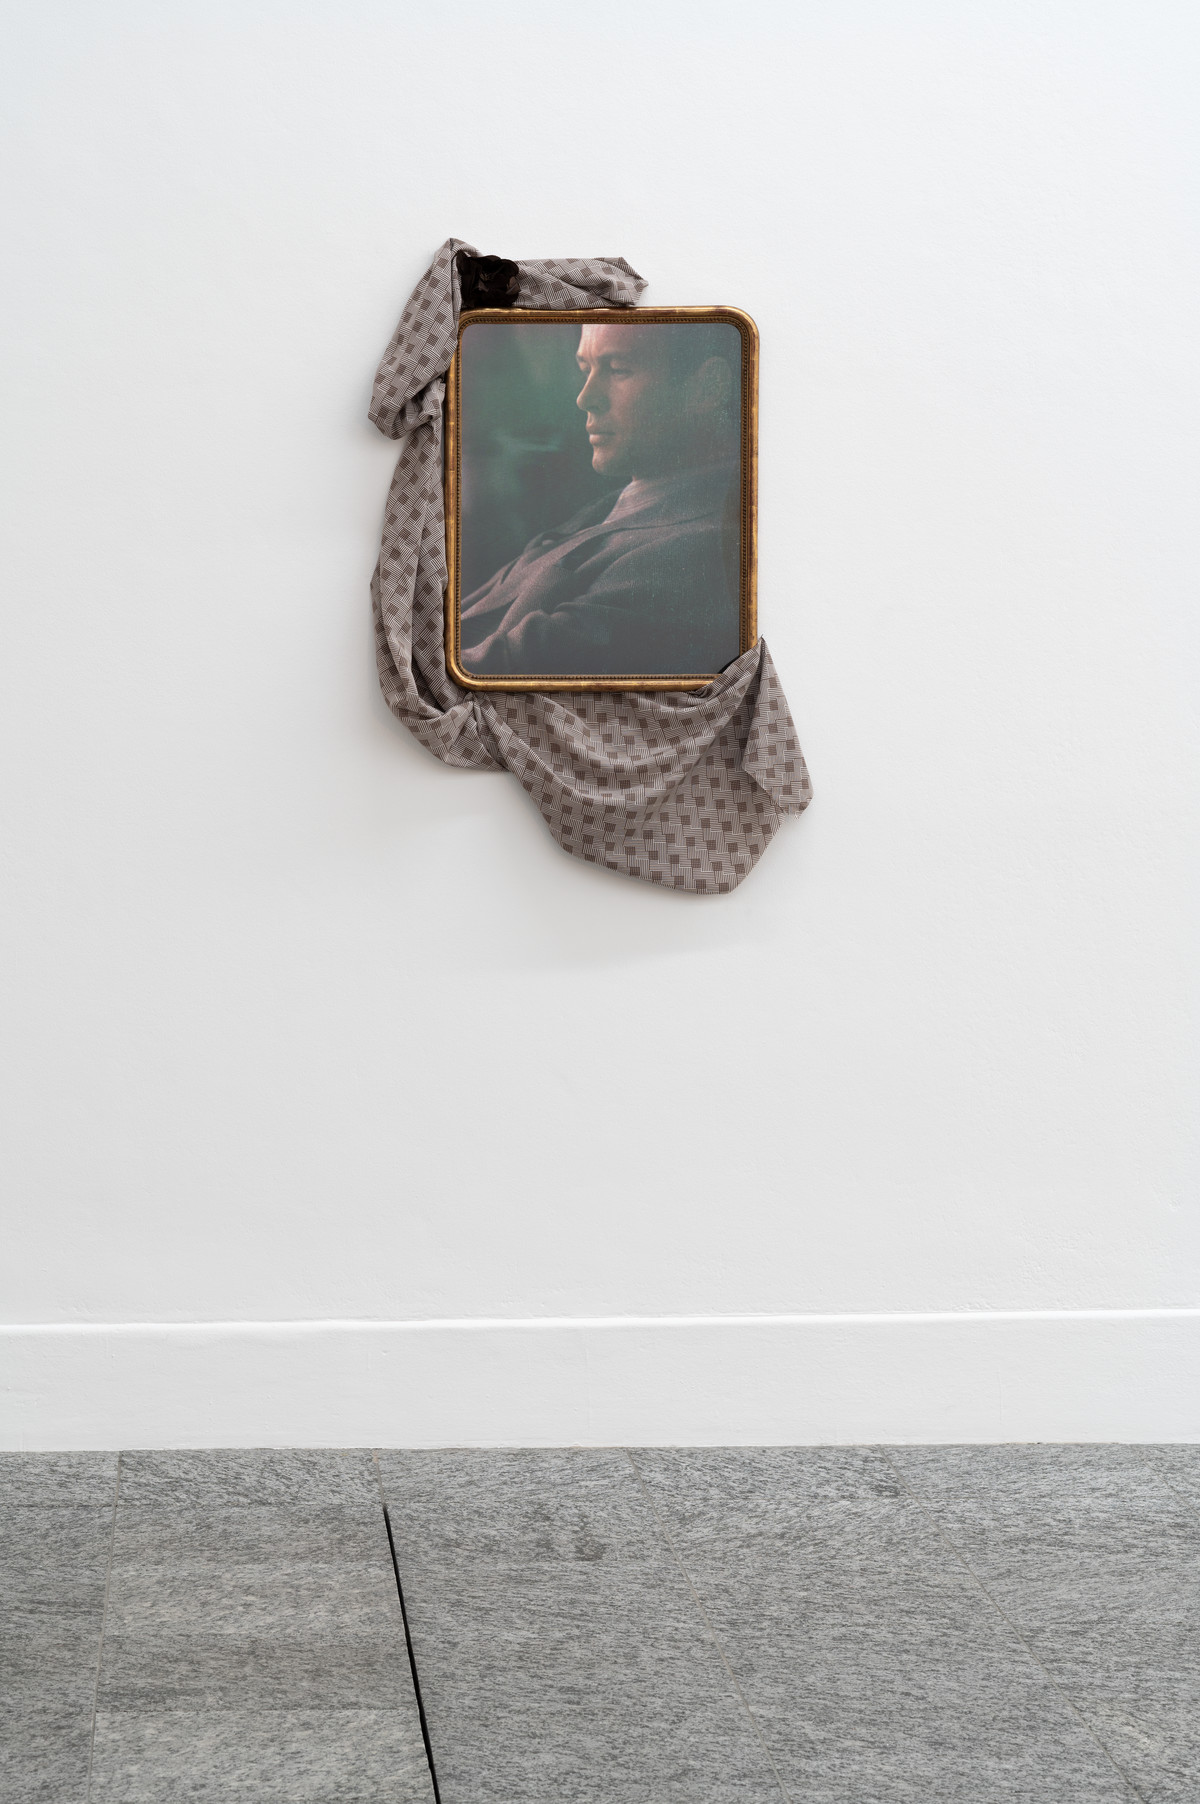 Kai Althoff, Untitled, 2004. Black-and-white-photograph on aluminum foil, antique frame, cloth, fabric flower.